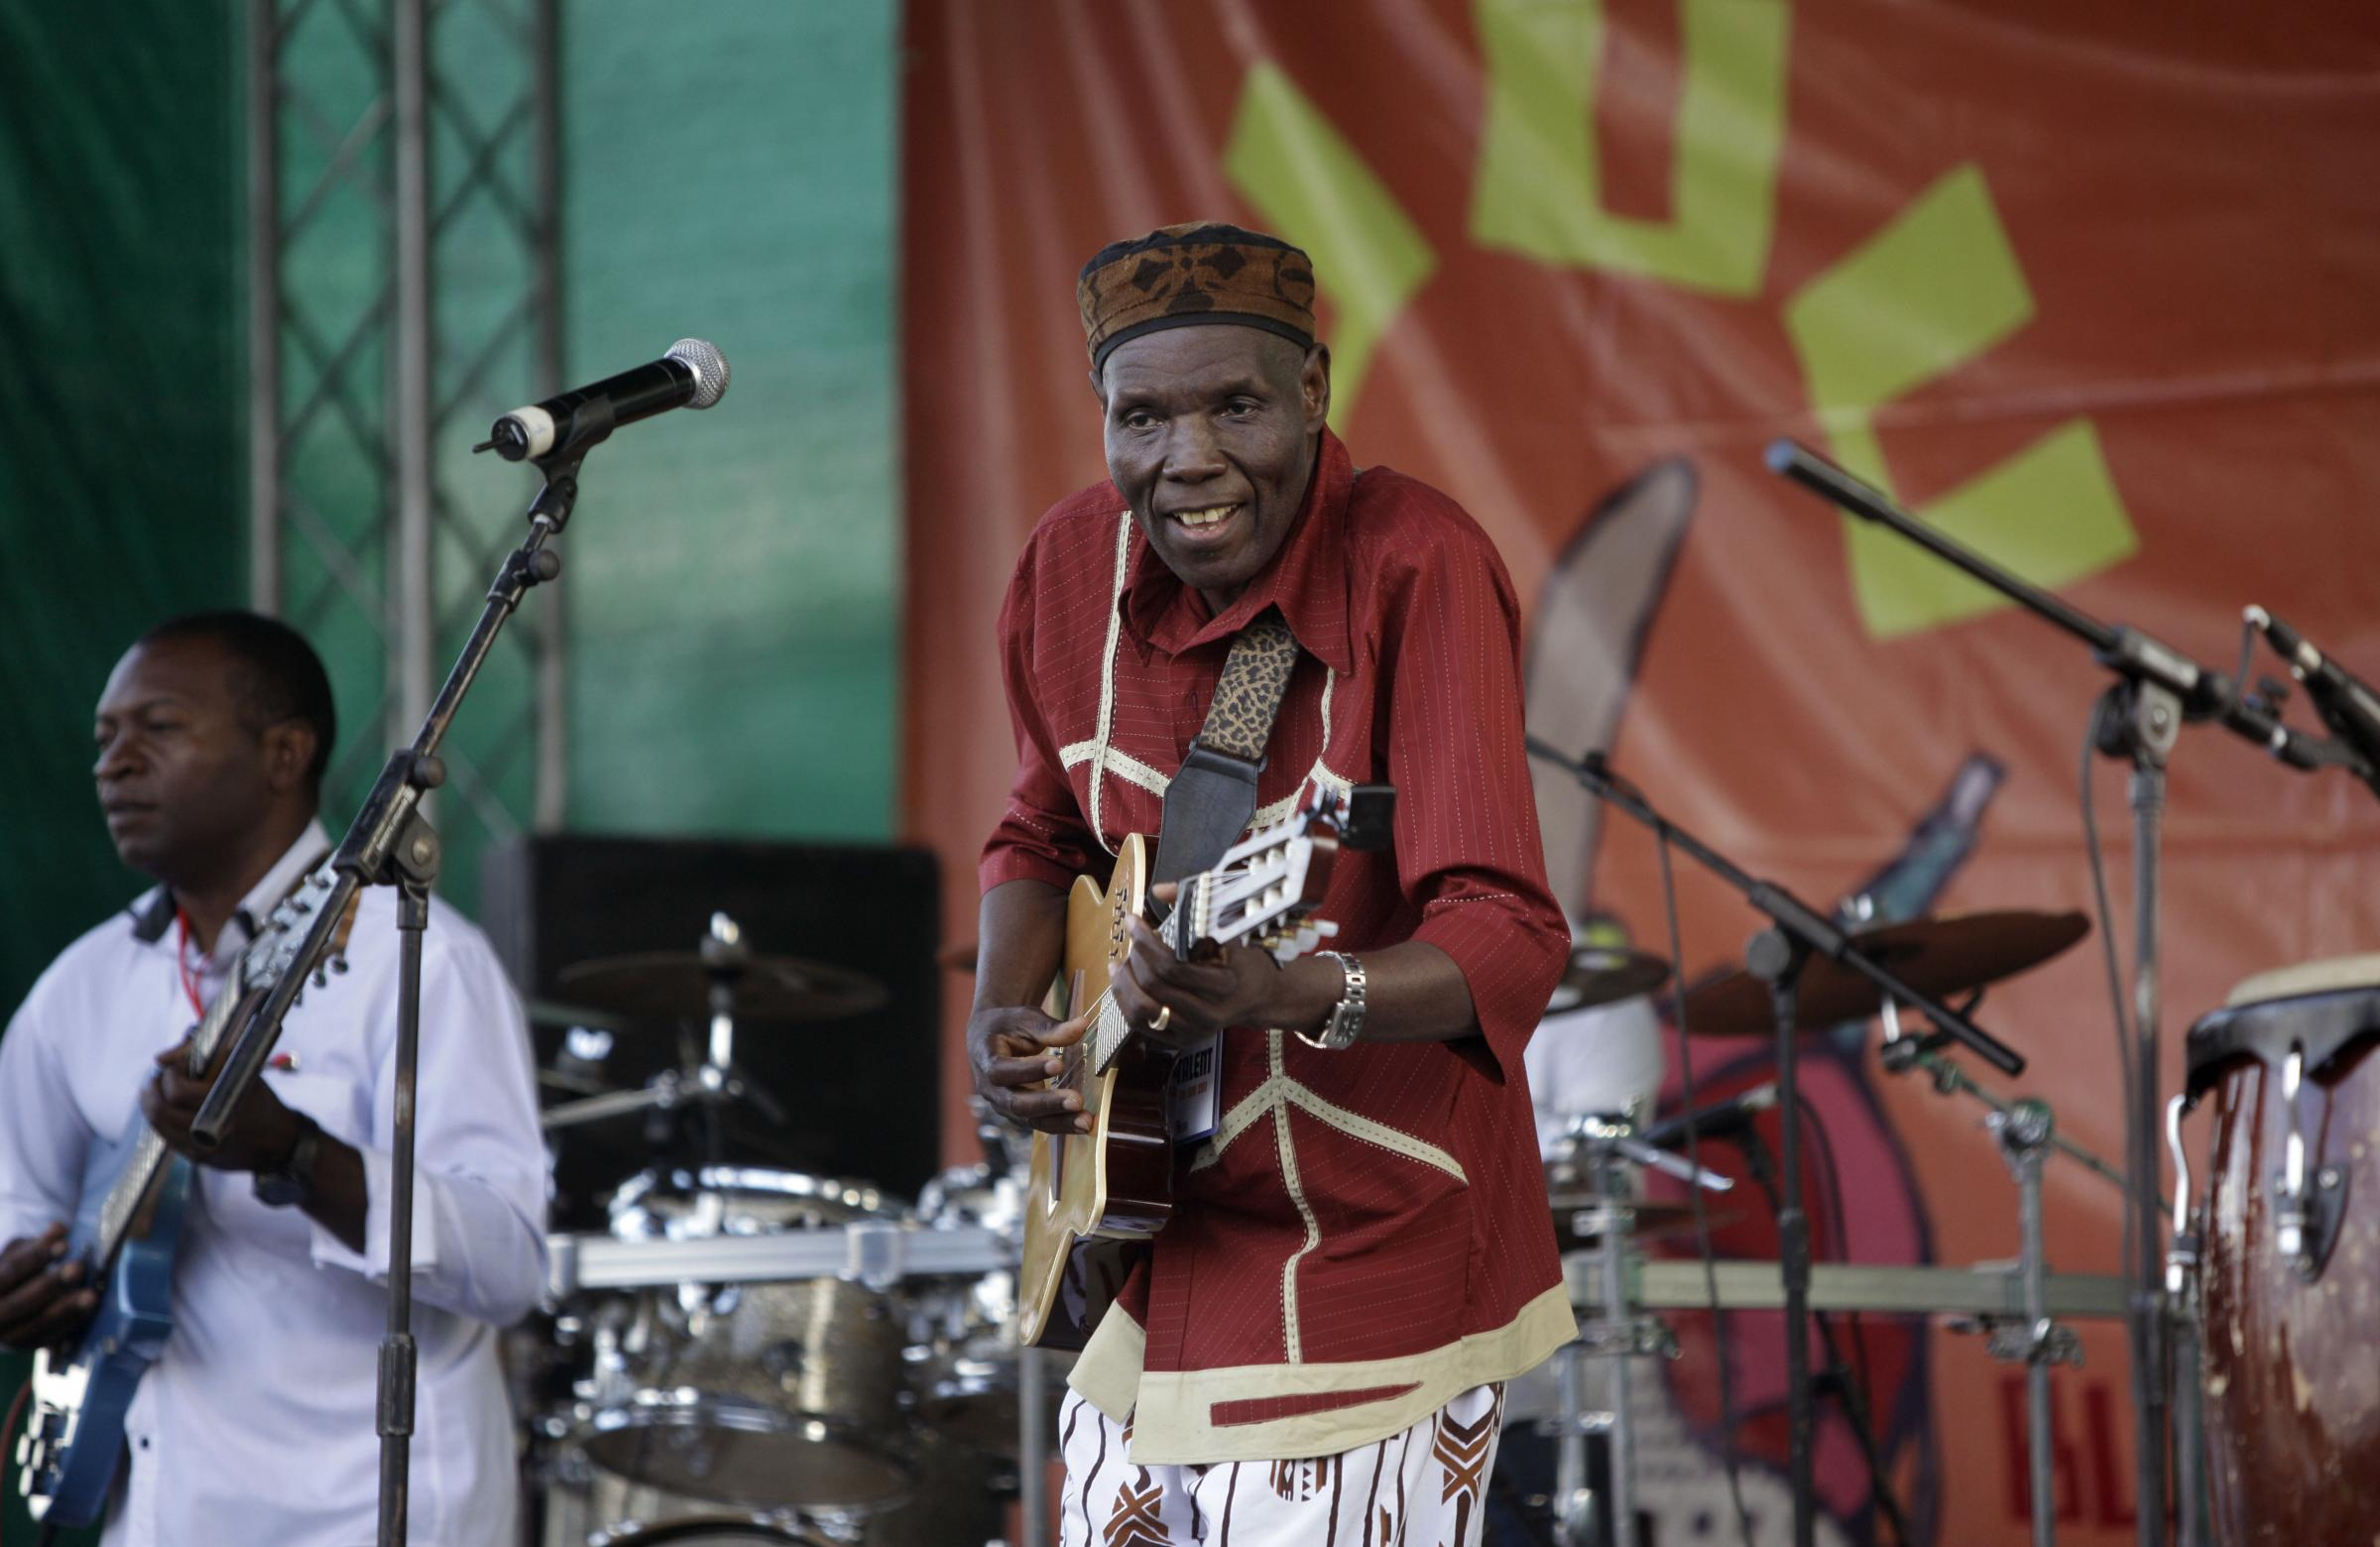 FILE - In this Sunday, Nov. 6, 2011 file photo, Zimbabwean music superstar and U.N. goodwill ambassador Oliver Mtukudzi, center, performs at a music festival held in Karen on the outskirts of Nairobi, Kenya. Zimbabwean musician and world music star Oliver